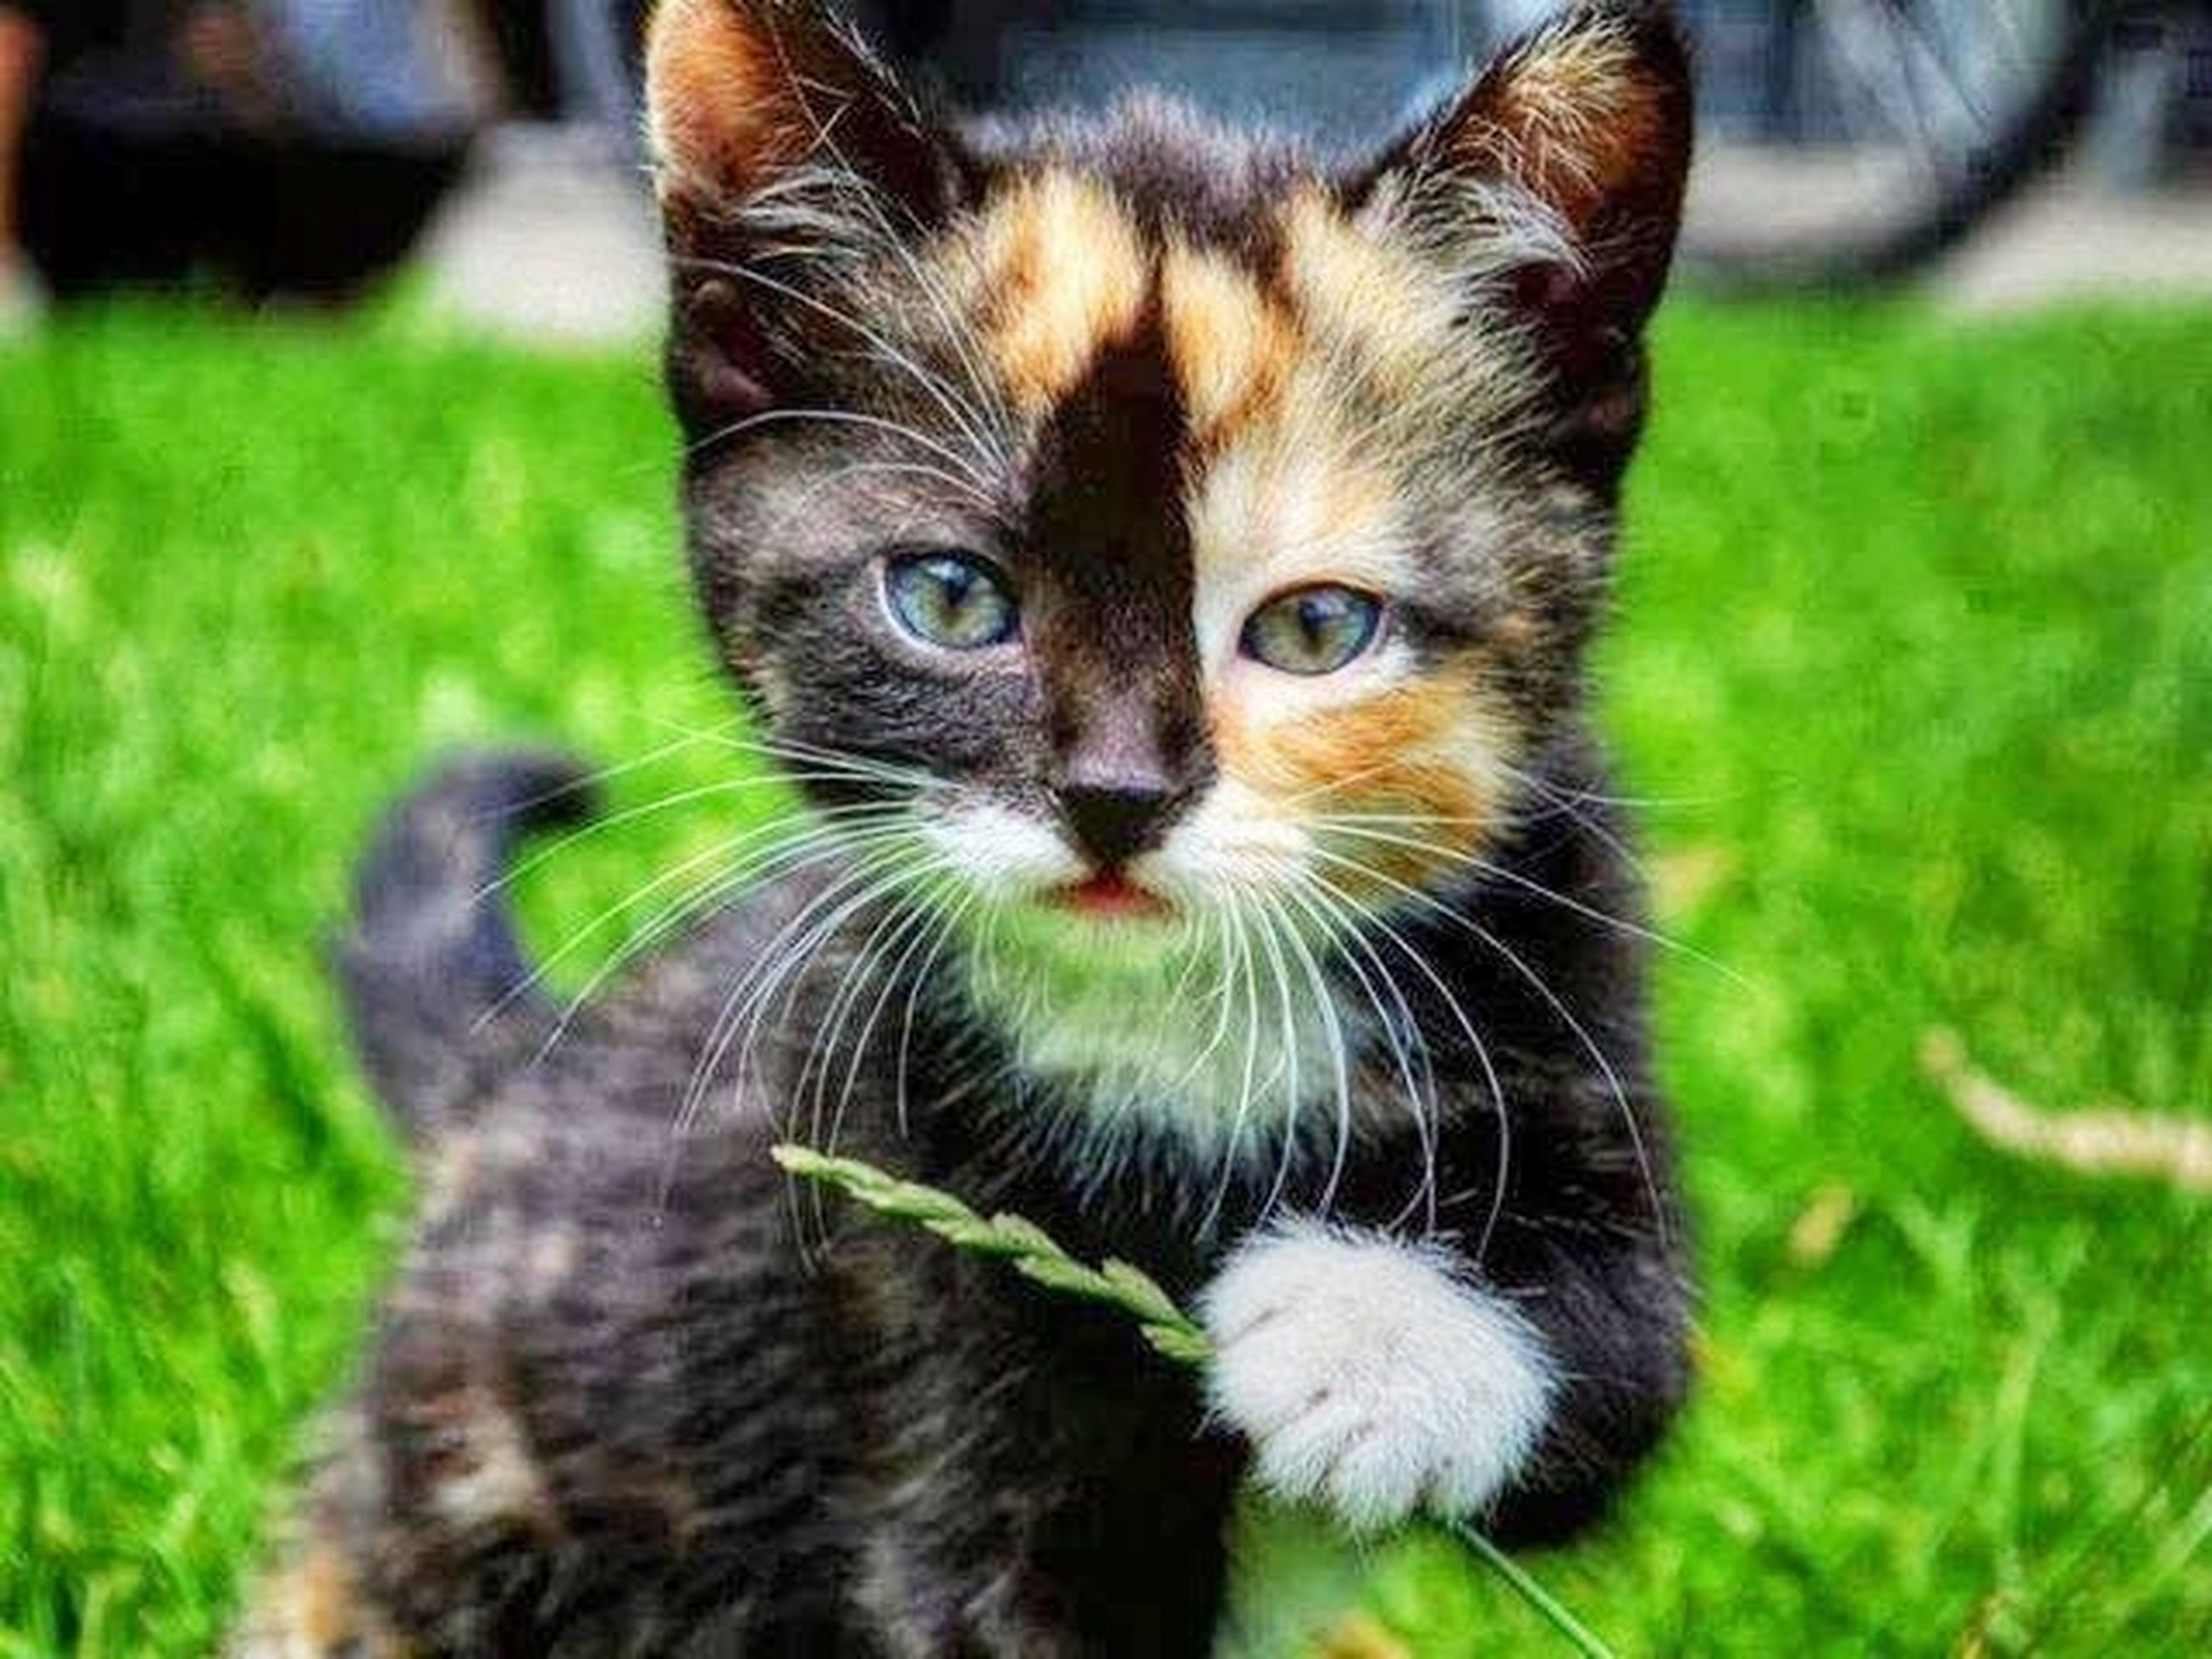 animal themes, one animal, pets, domestic animals, mammal, domestic cat, cat, feline, grass, whisker, looking at camera, portrait, focus on foreground, field, close-up, grassy, animal head, selective focus, sitting, alertness